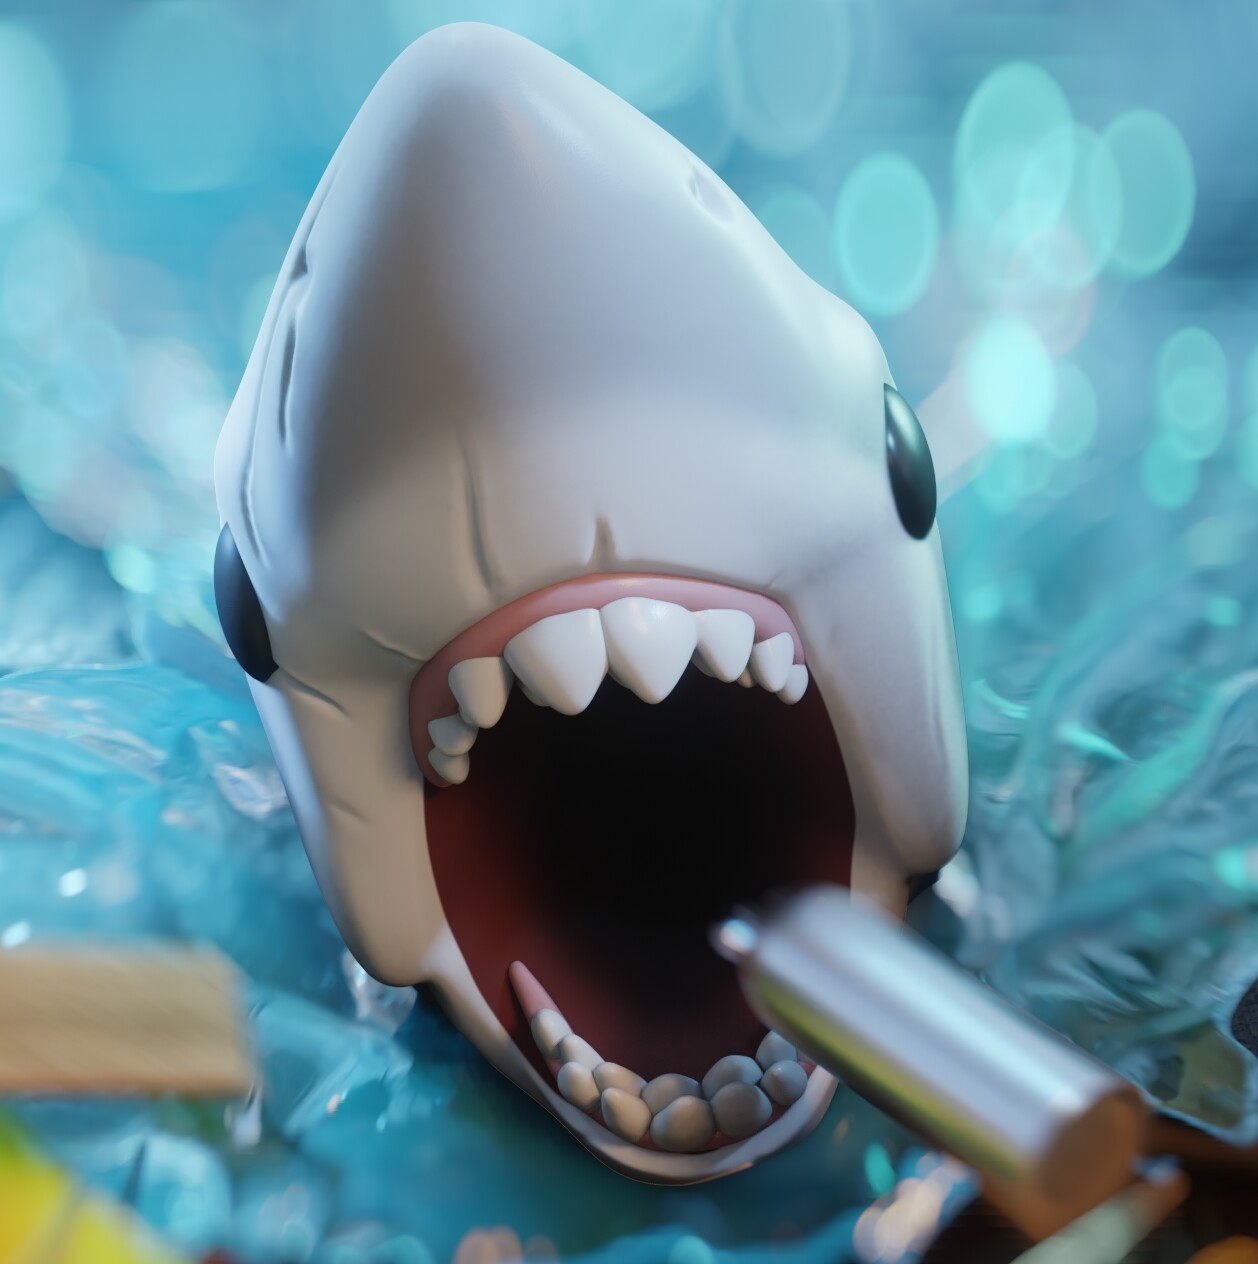 jaws character close-up